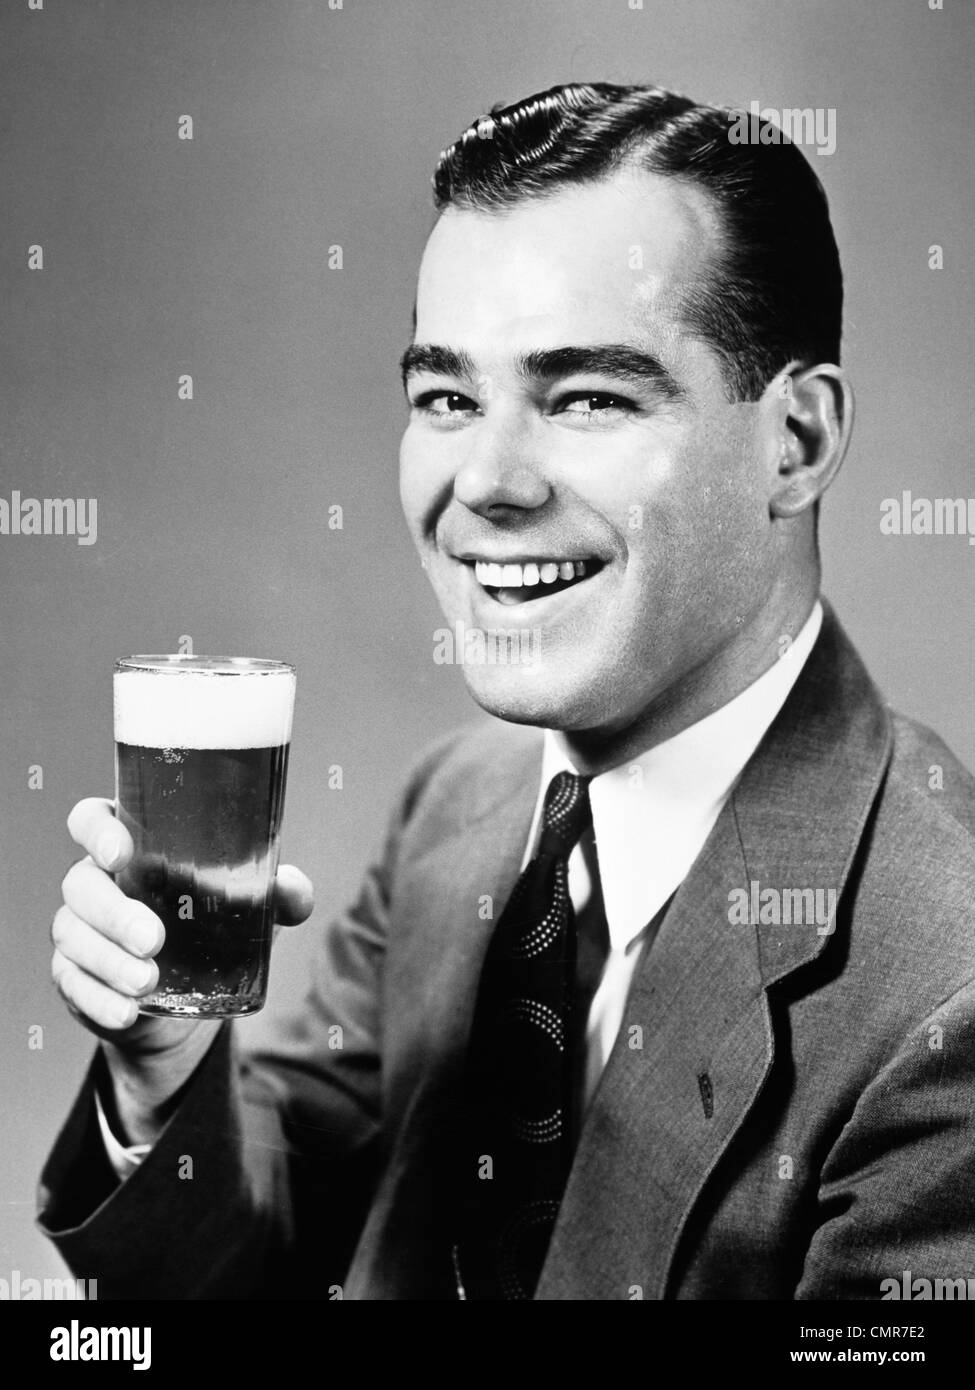 1940 SMILING MAN HOLDING GLASS OF BEER Photo Stock